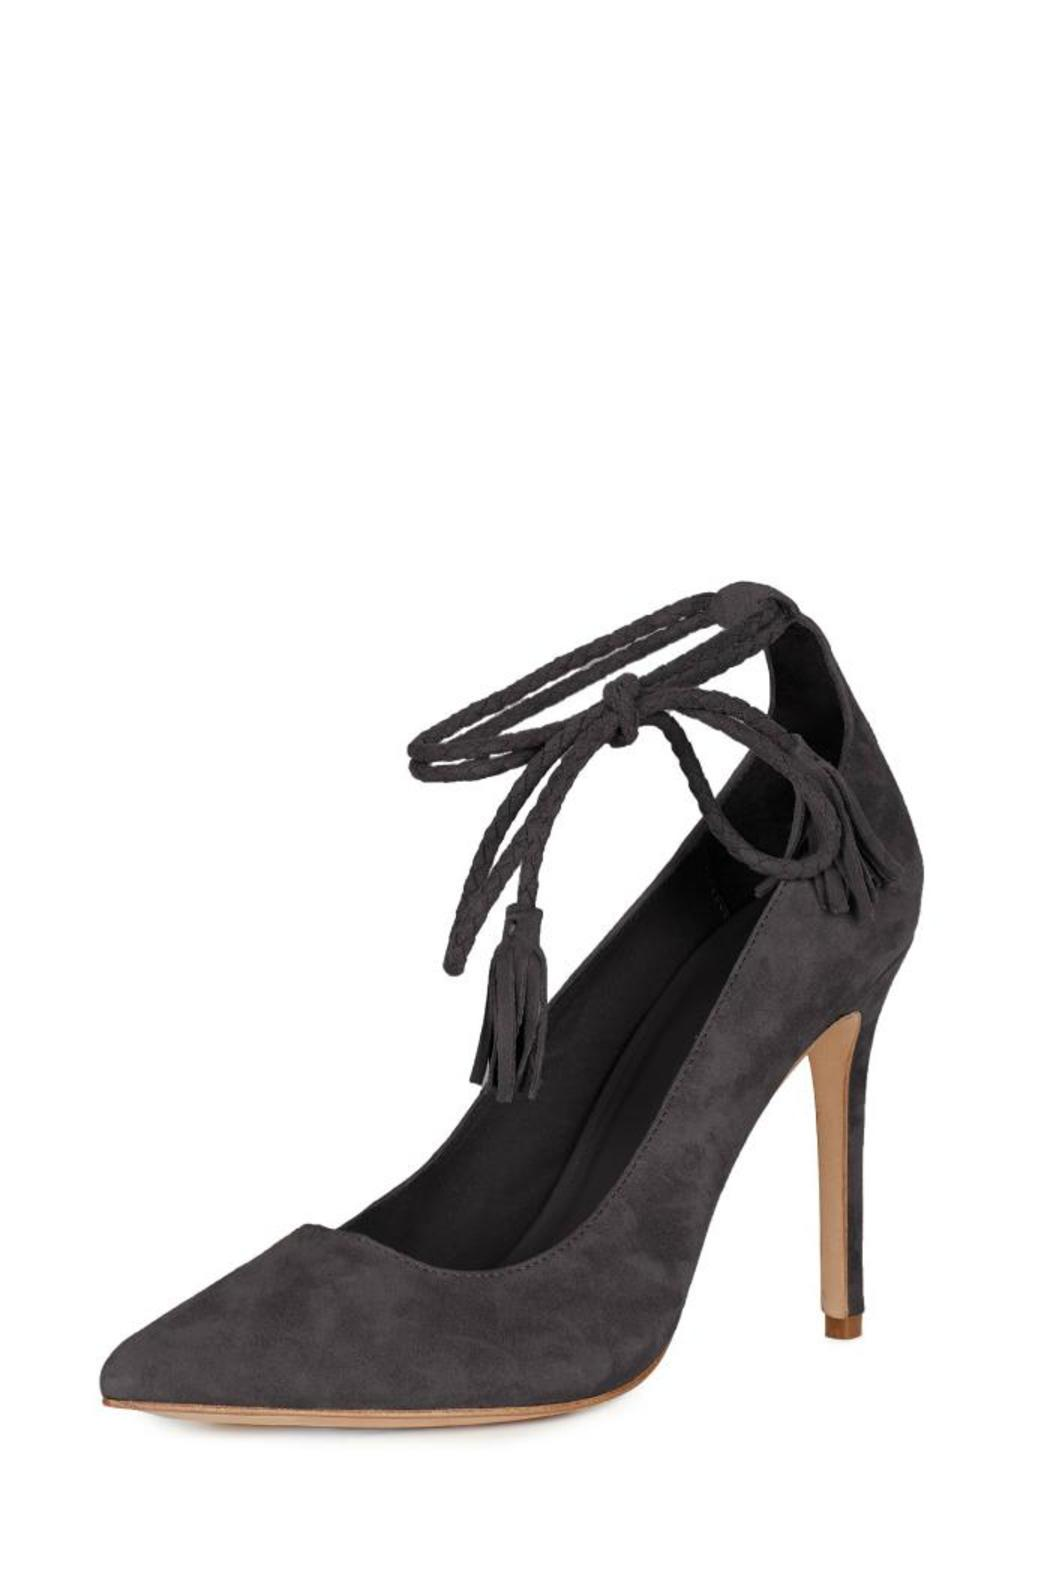 Joie Angelynn Suede Pumps - Front Cropped Image